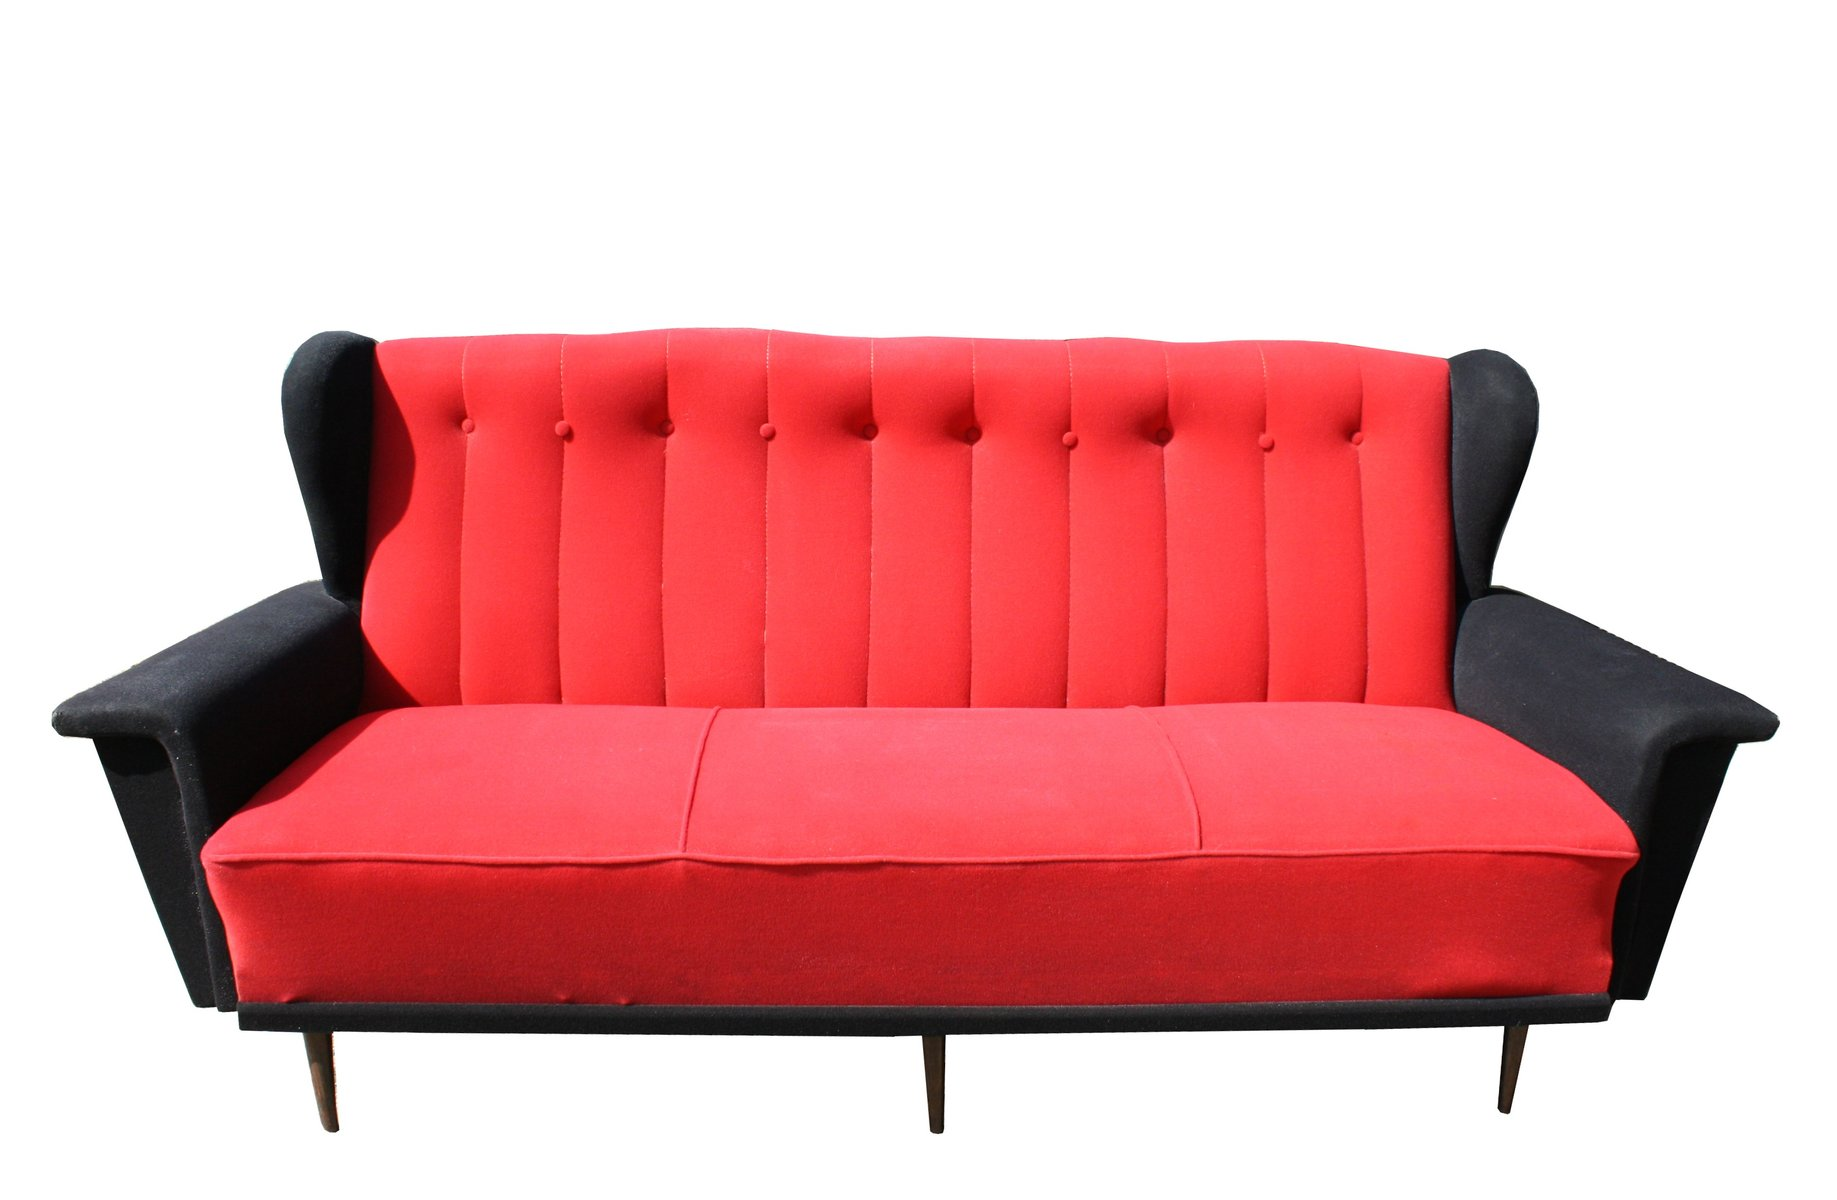 vintage sofa in rot und schwarz 1950er bei pamono kaufen. Black Bedroom Furniture Sets. Home Design Ideas